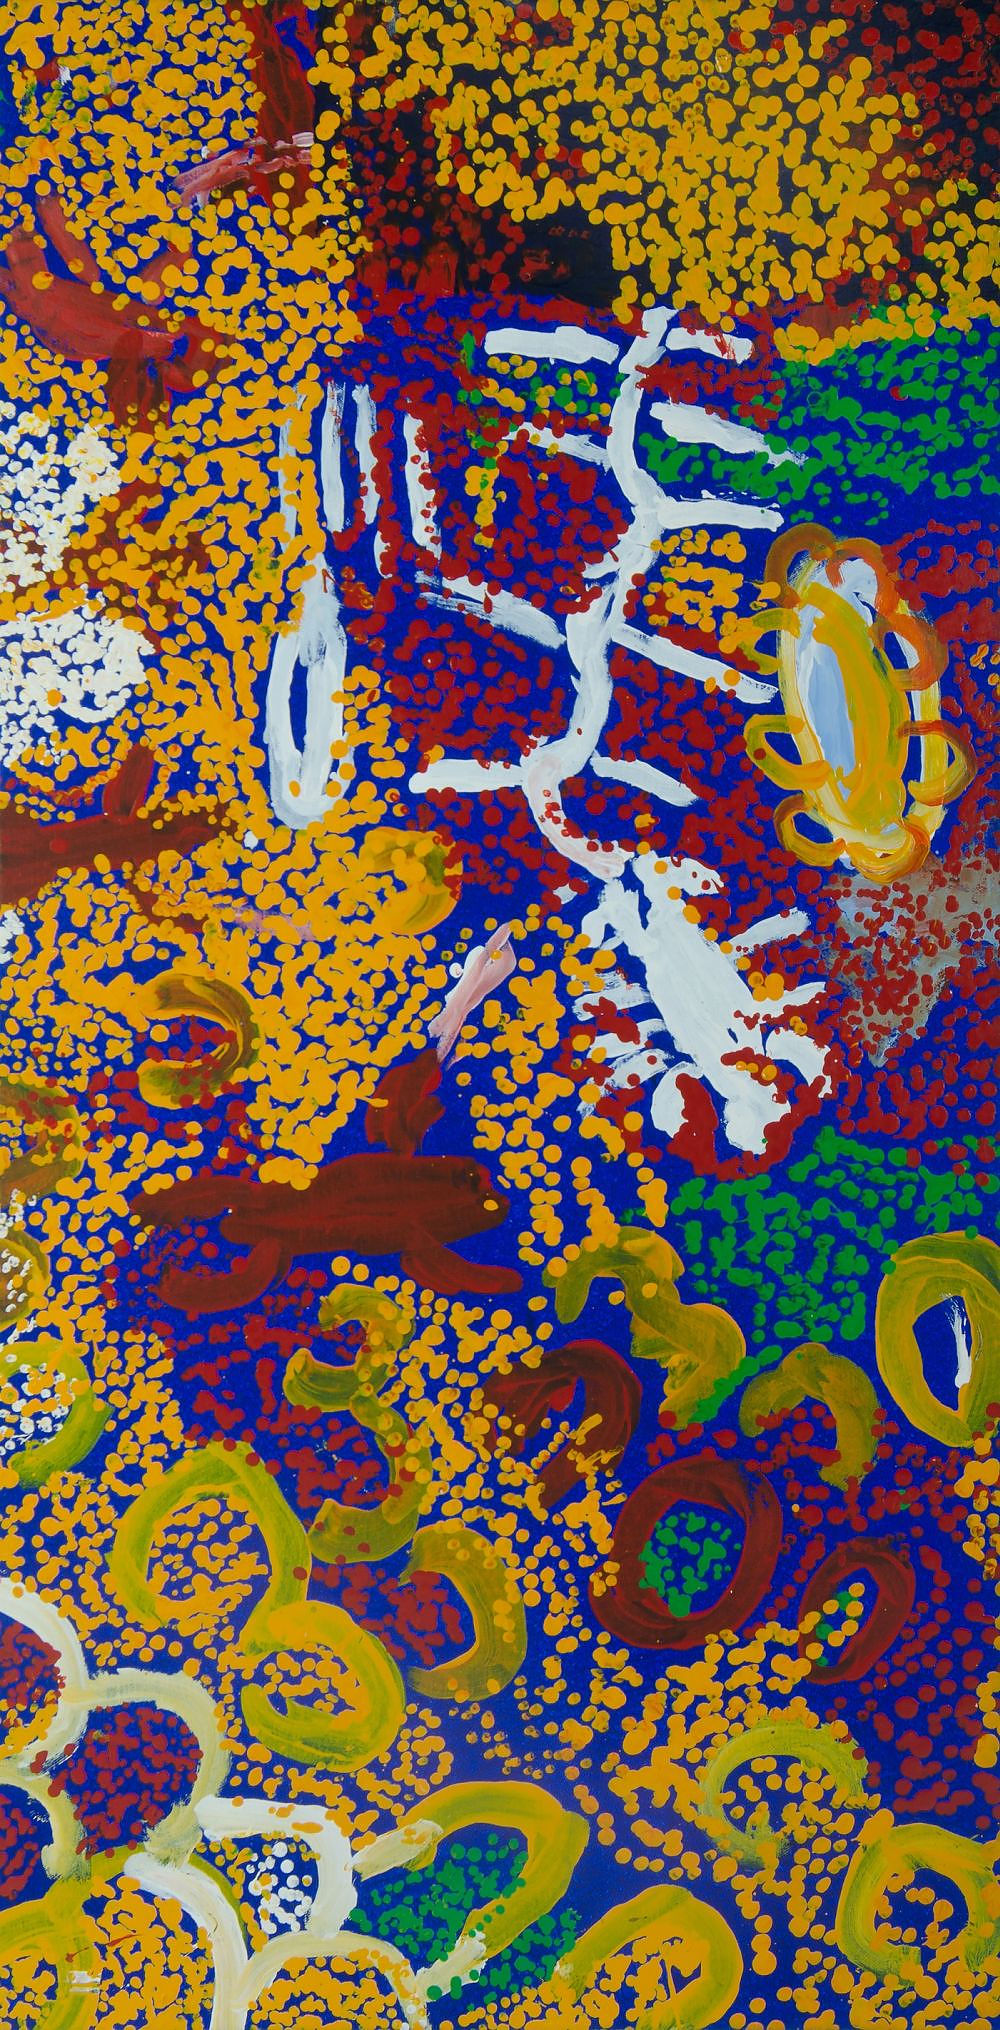 'MICK, Kuntjiria (b.1931) Waltja Waltjana, 2003. Provenance: Irrunytju Arts Centre (cat IRRKM03057) Acrylic on Canvas'